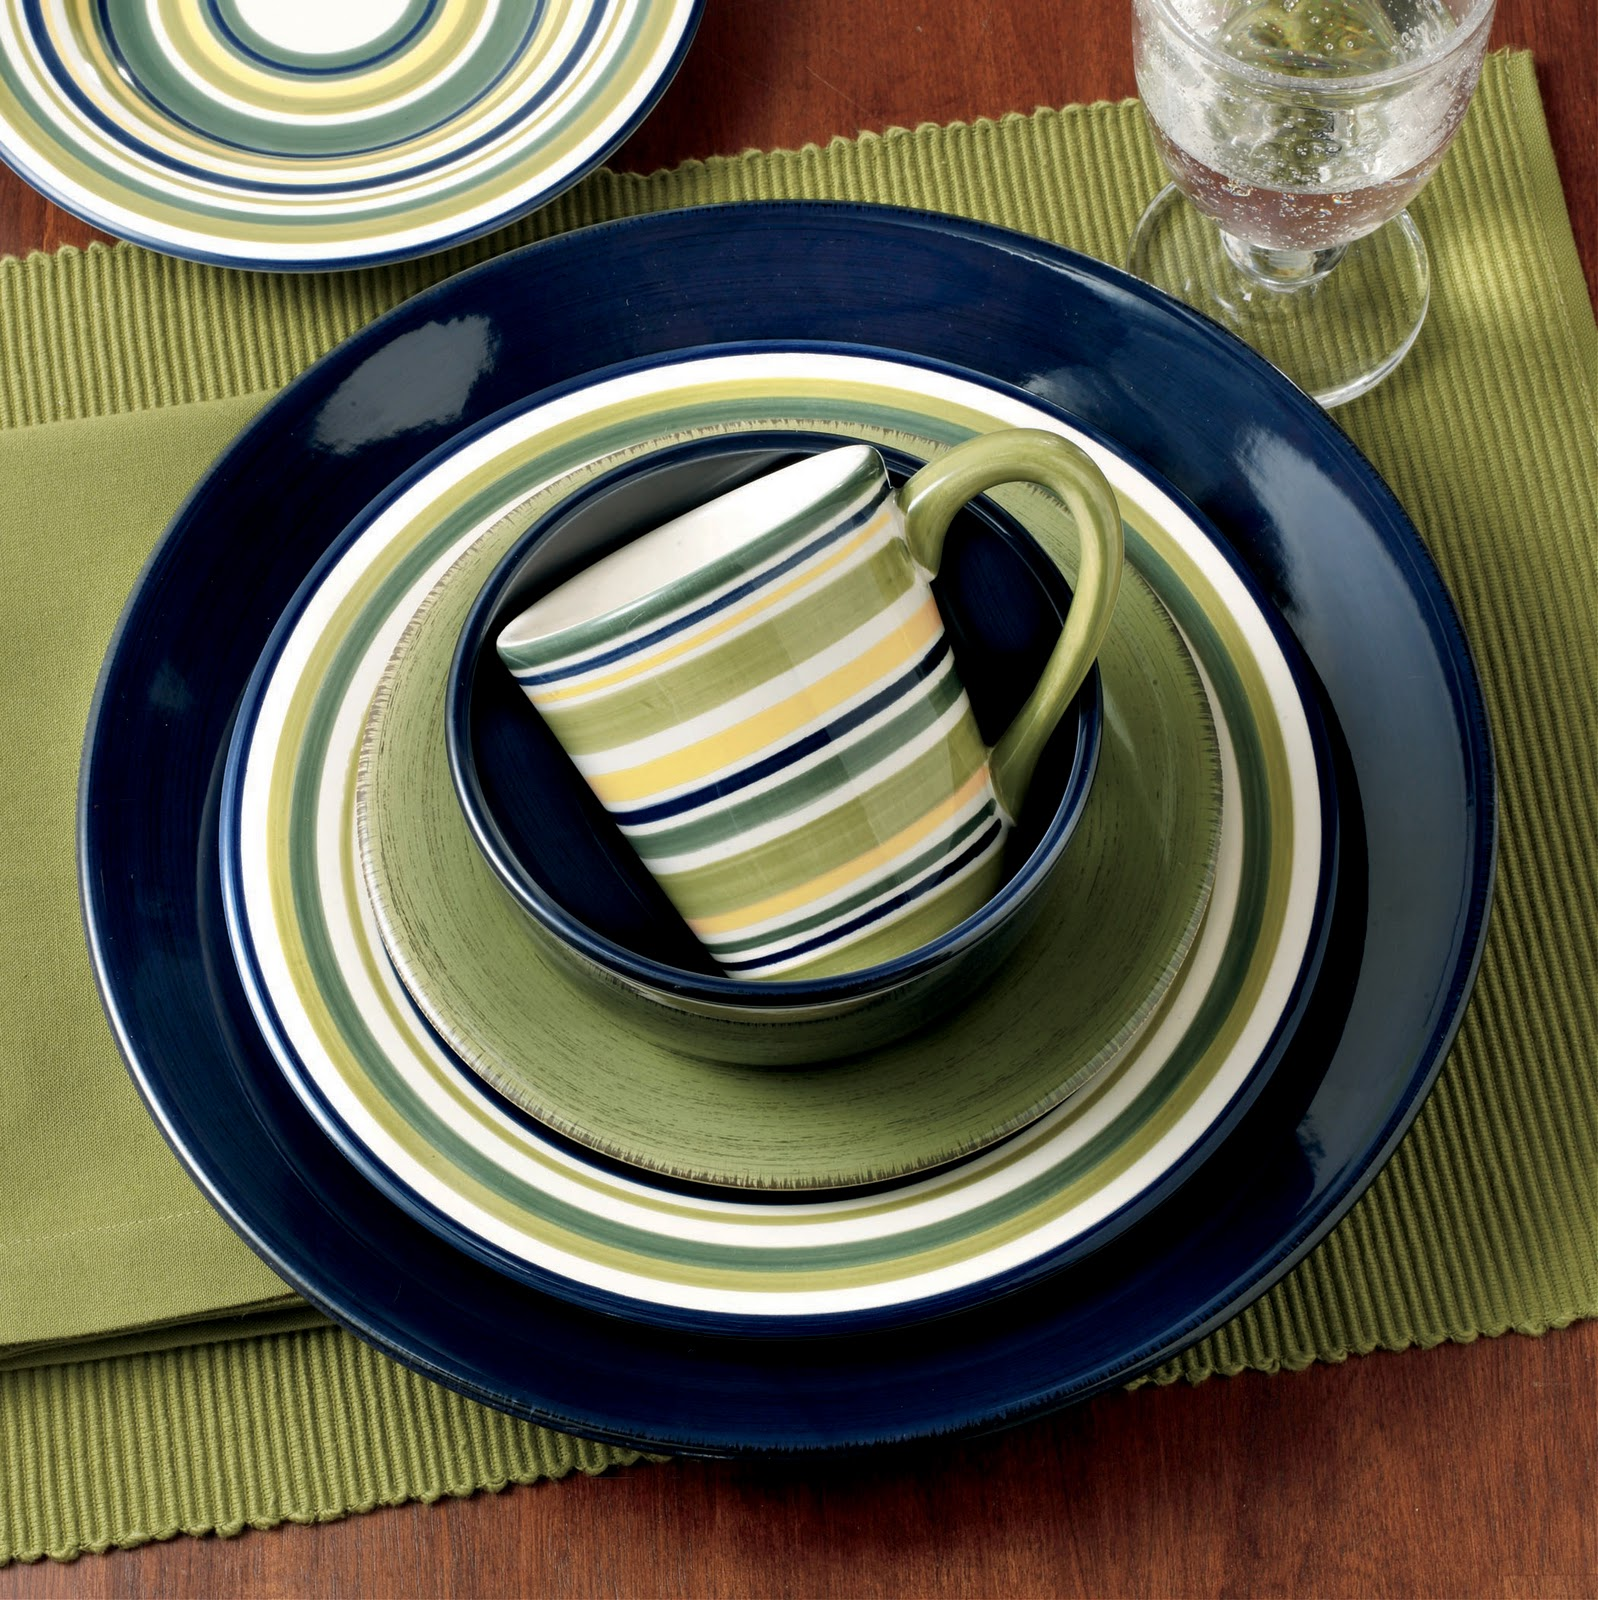 Gift \u0026 Home Today Dinnerware in stripes and solids; paper goods for Halloween & Gift \u0026 Home Today: Dinnerware in stripes and solids; paper goods for ...